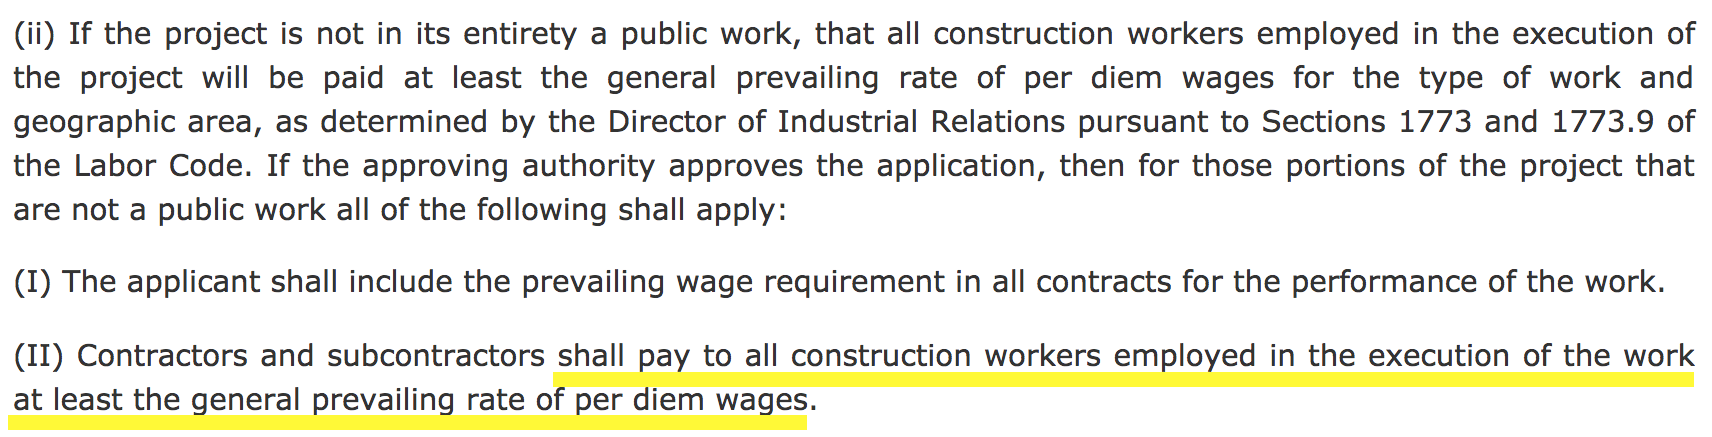 Wiener, Who Was Elected In November, Called Diaz, The Building Tradesu0027  Political Director, Before He Took Office To Ask Him What Labor Unions  Wanted In The ...  Construction Worker Job Description